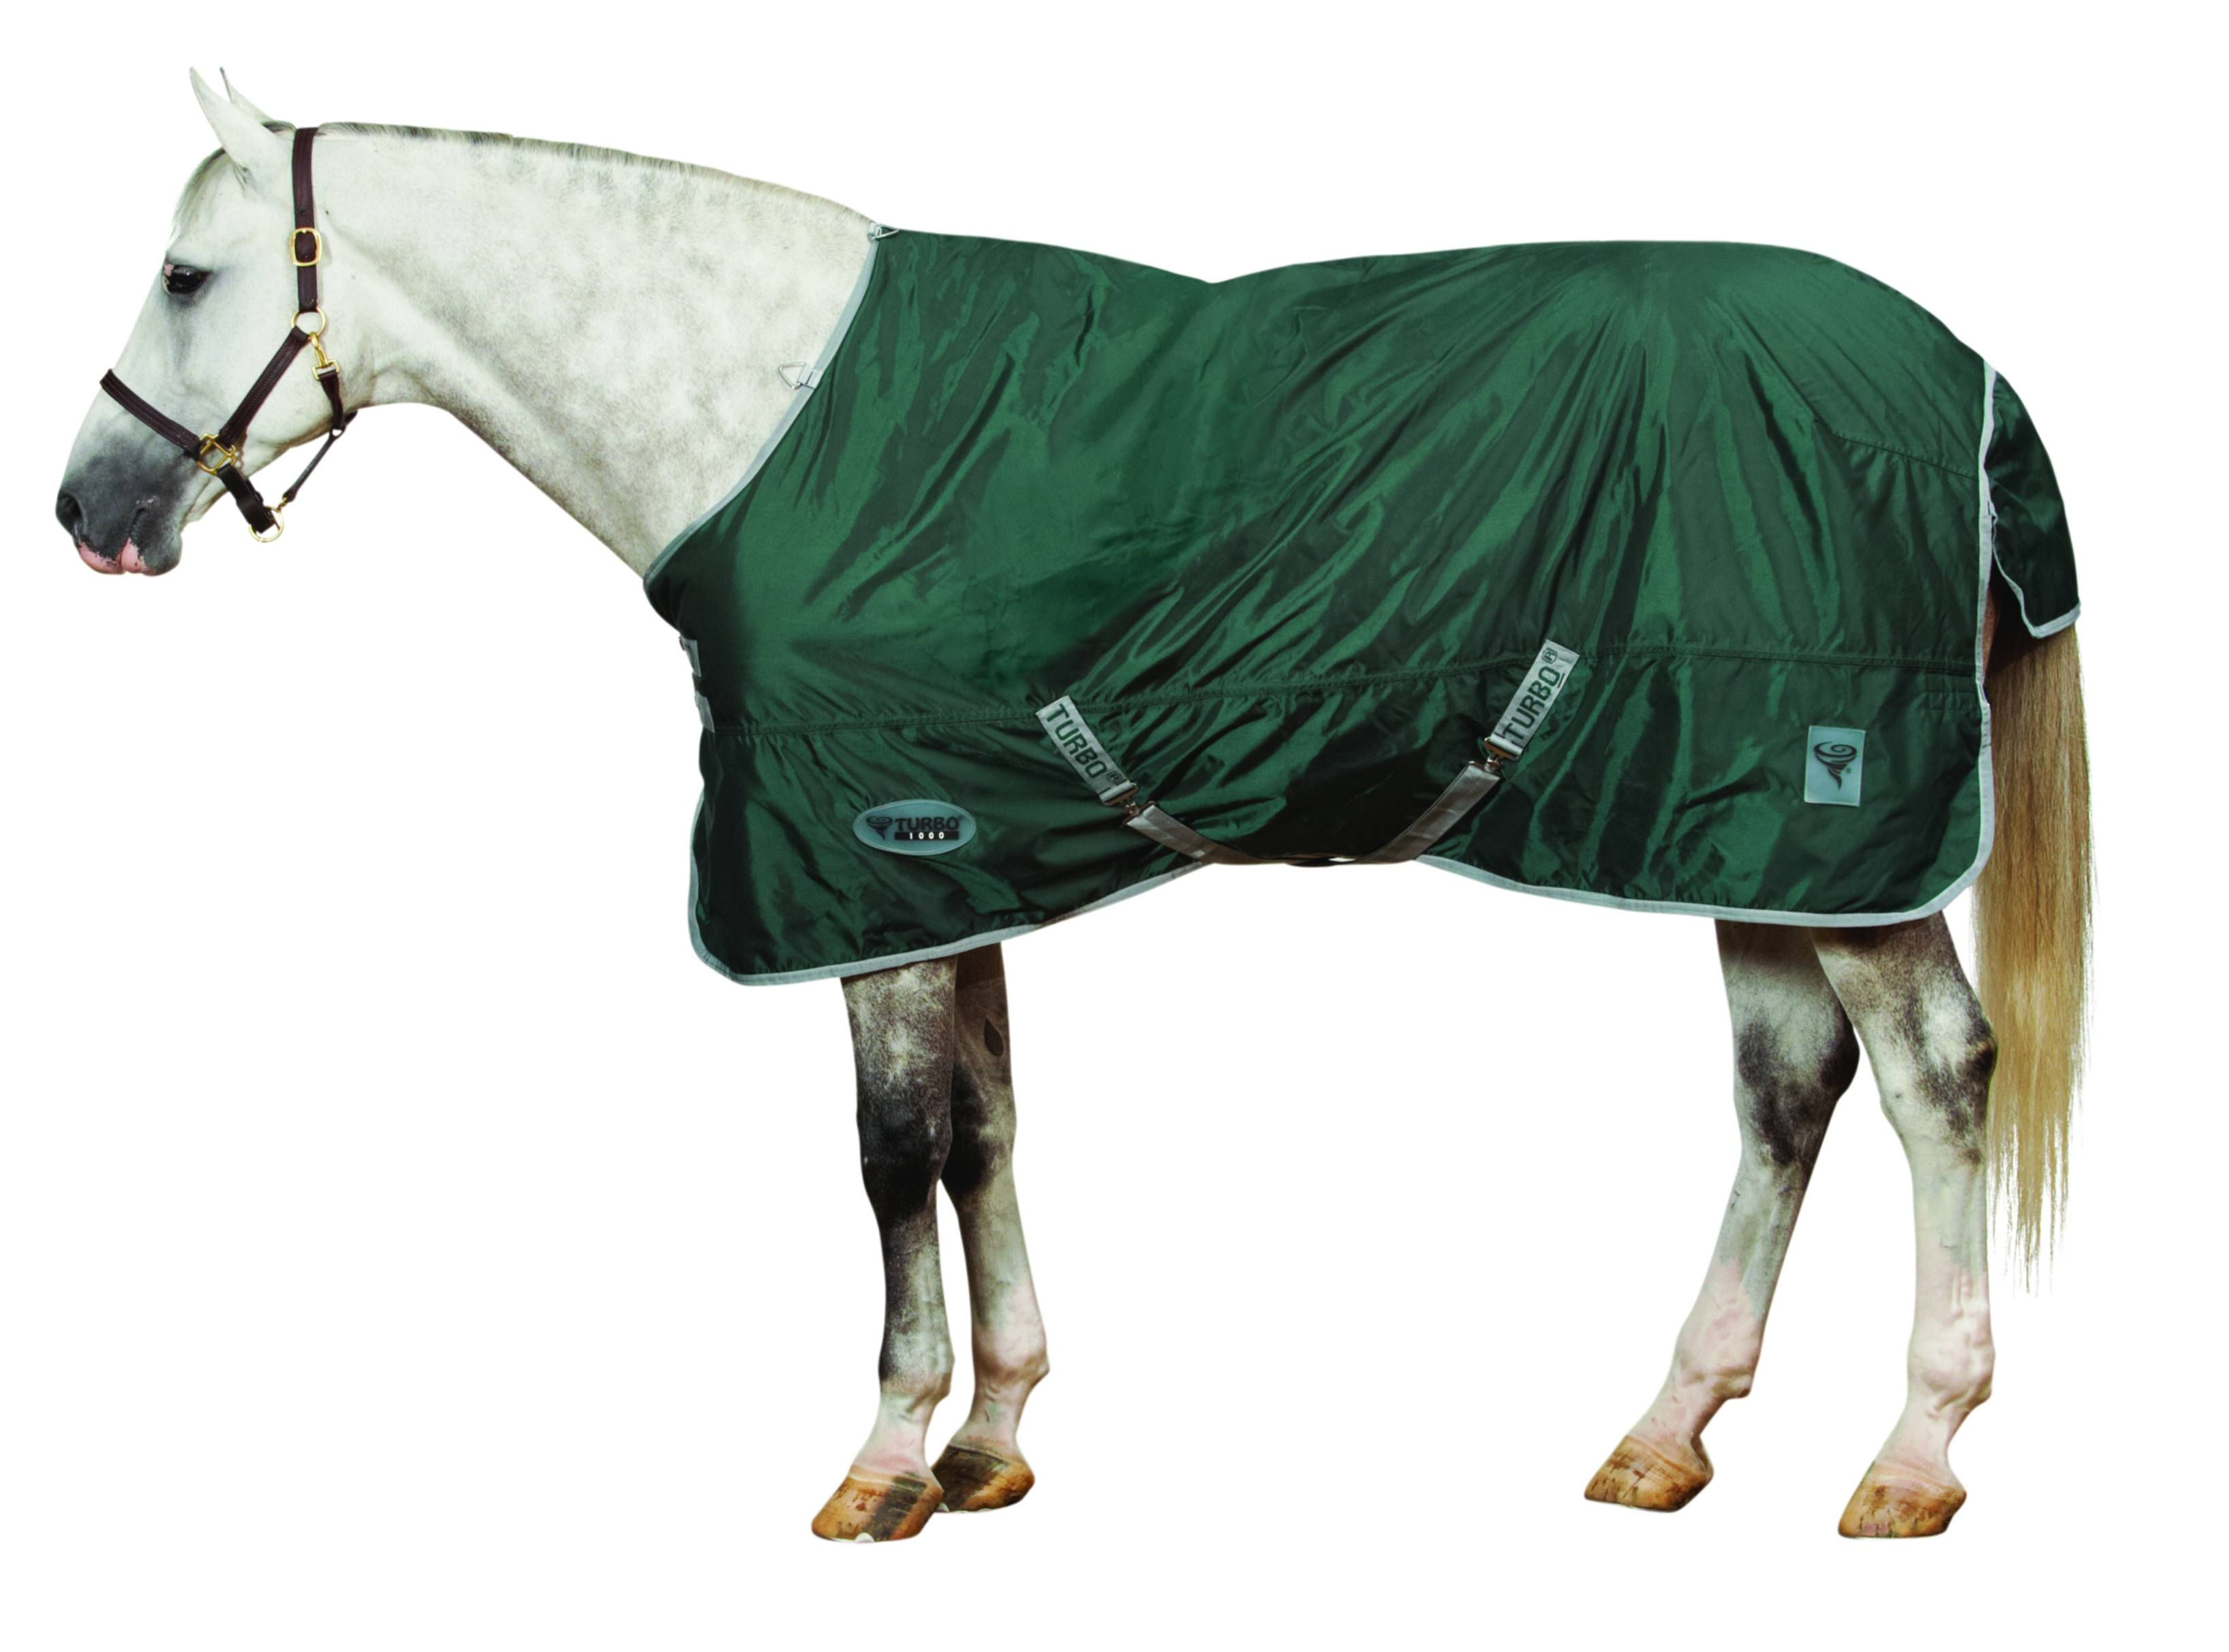 Centaur Turbo 1000D Waterproof / Breathable Medium Weight Turnout Blanket